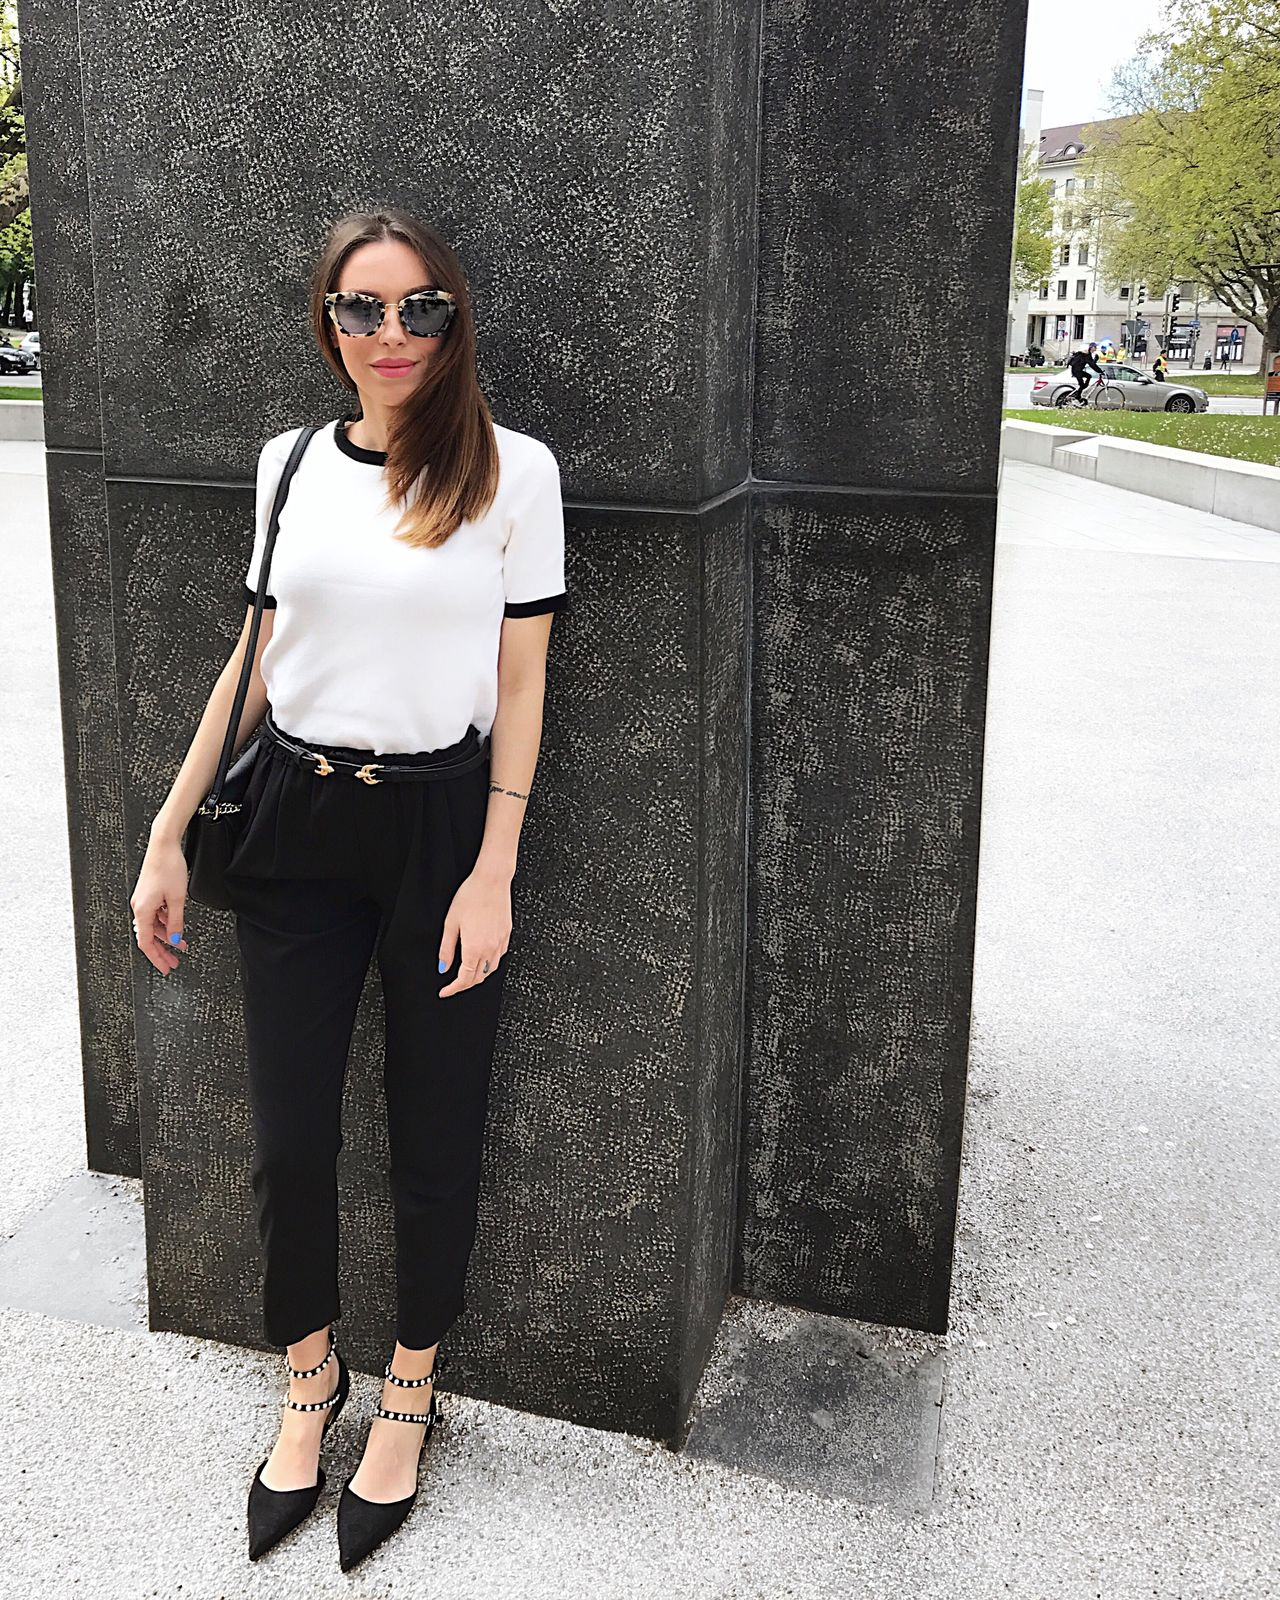 Sunglasses One Person Portrait Standing Looking At Camera Young Adult Full Length One Woman Only Fashion Black Color Young Women One Young Woman Only Casual Clothing Adult Day Long Hair Only Women Outdoors Fashion Model Women Fashion&love&beauty Sunny Day Saturday Lovefashion Blackandwhite